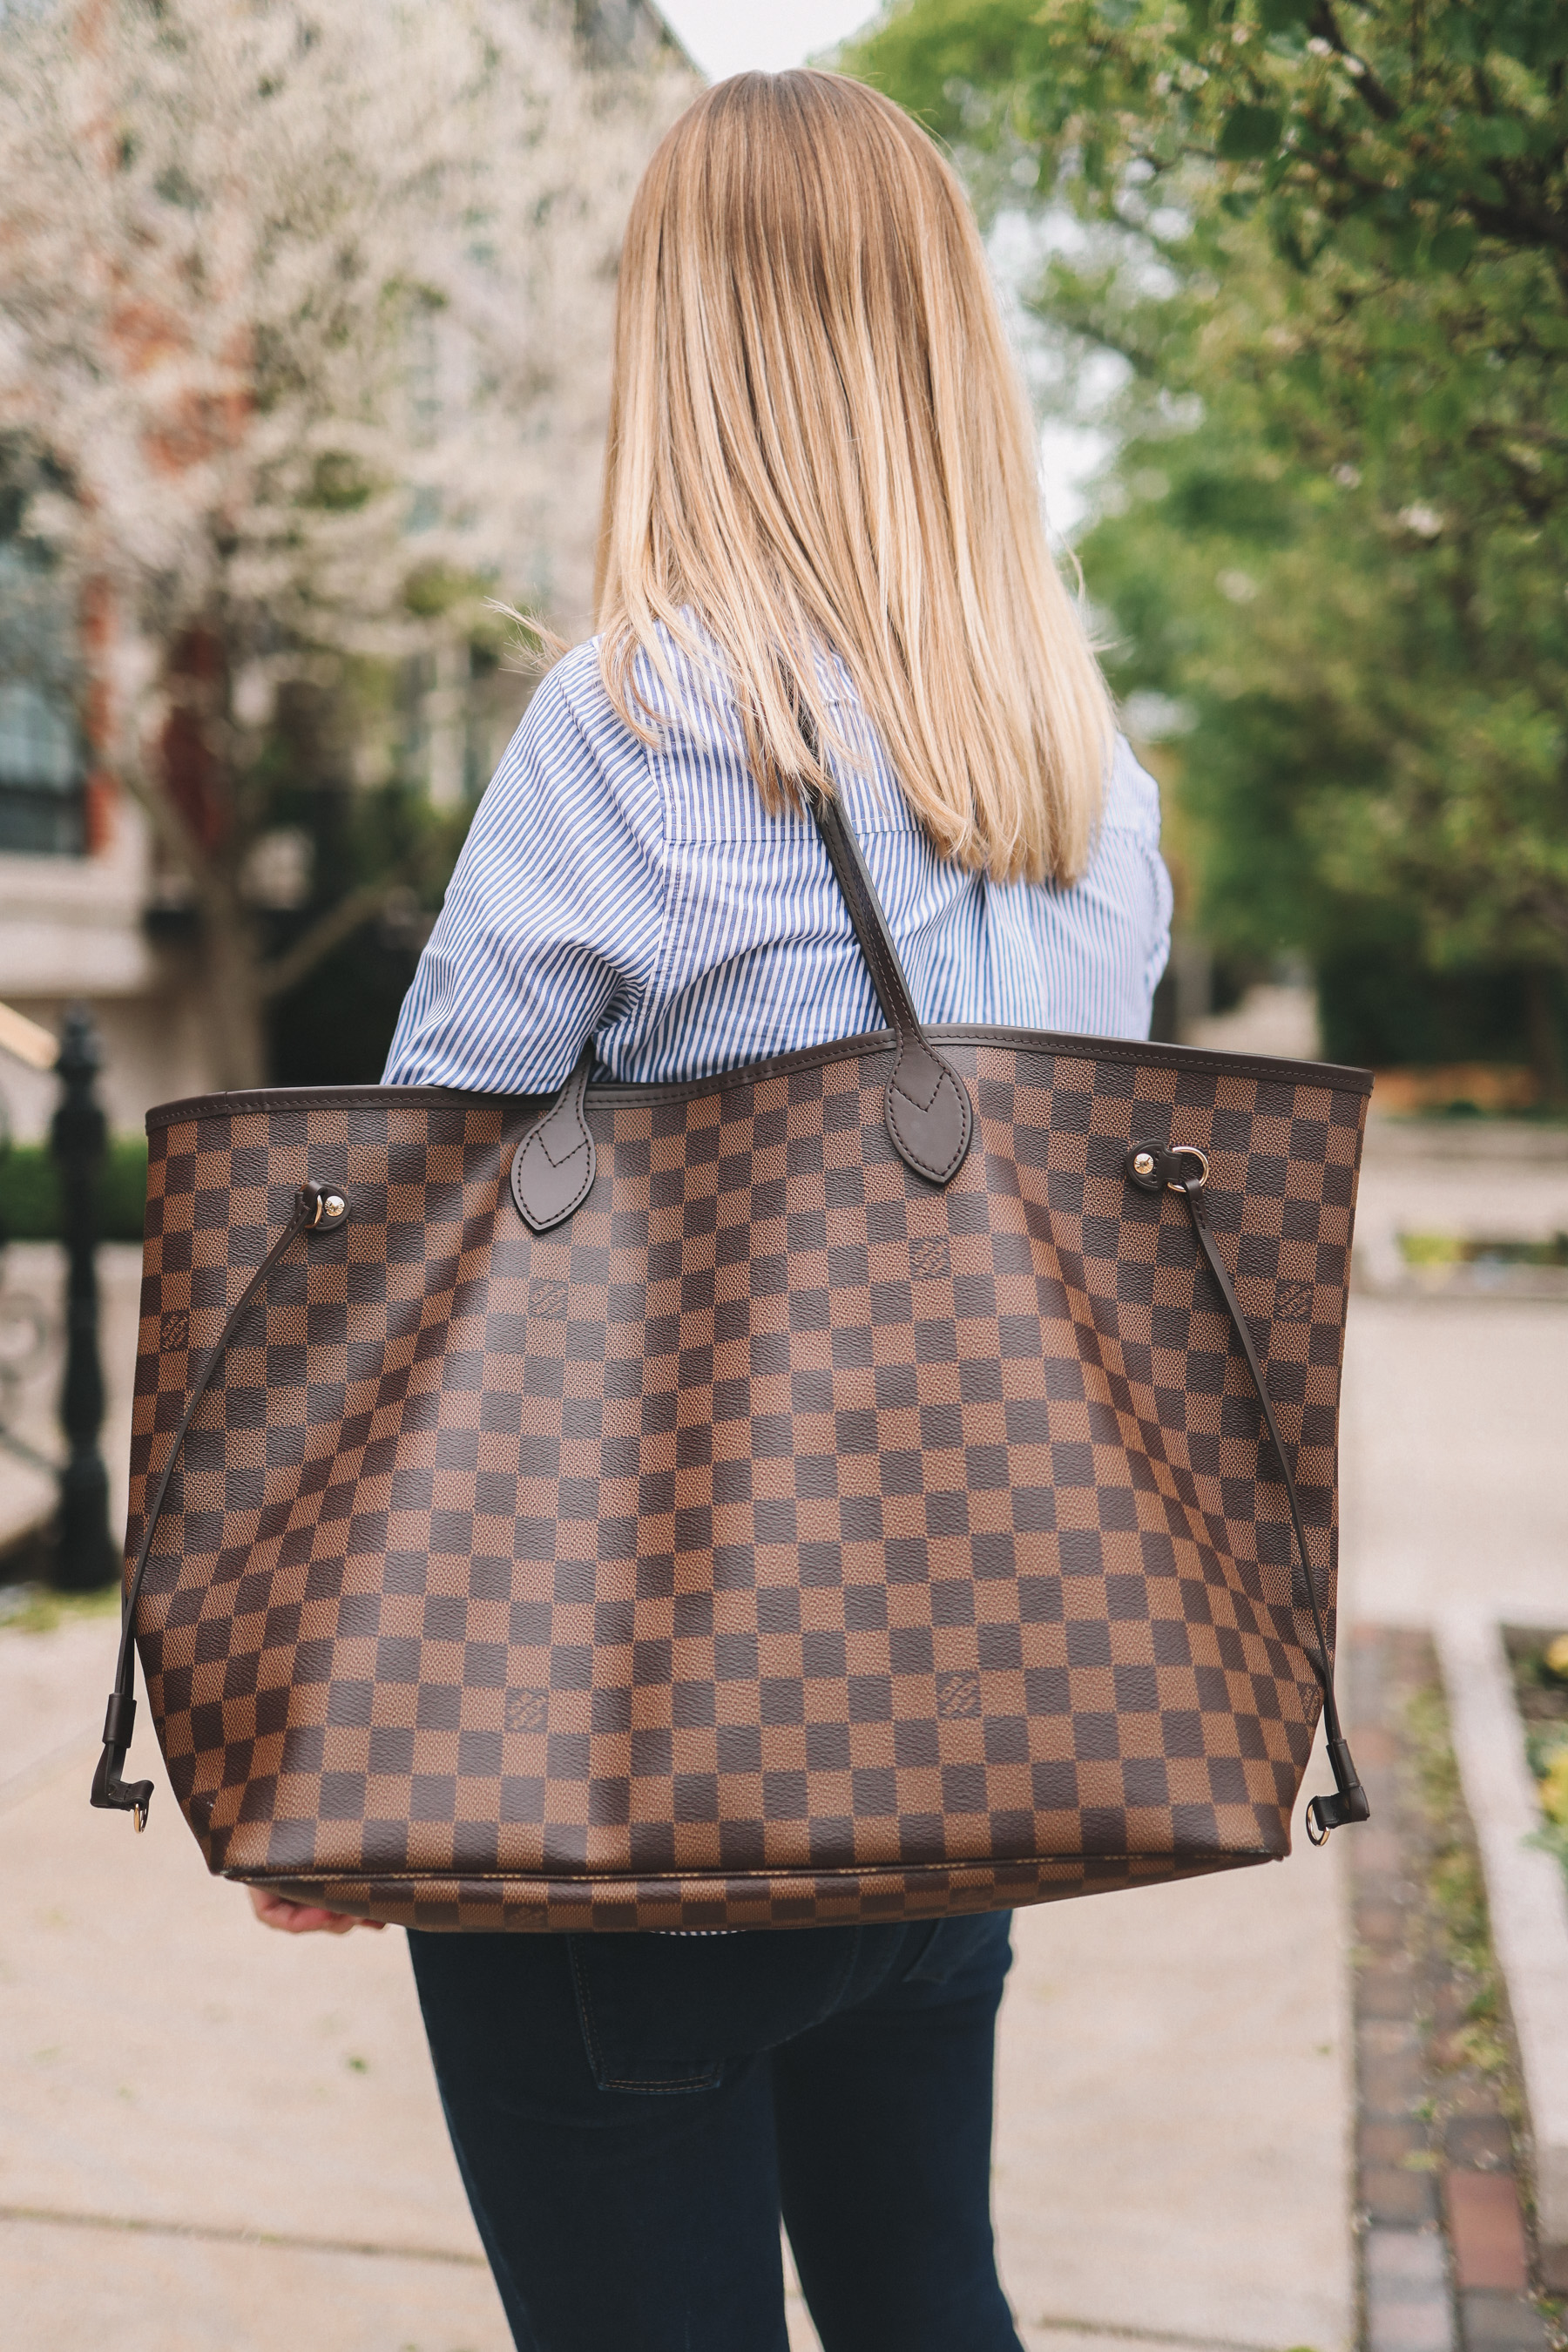 Kelly is caring a Louis Vuitton tote